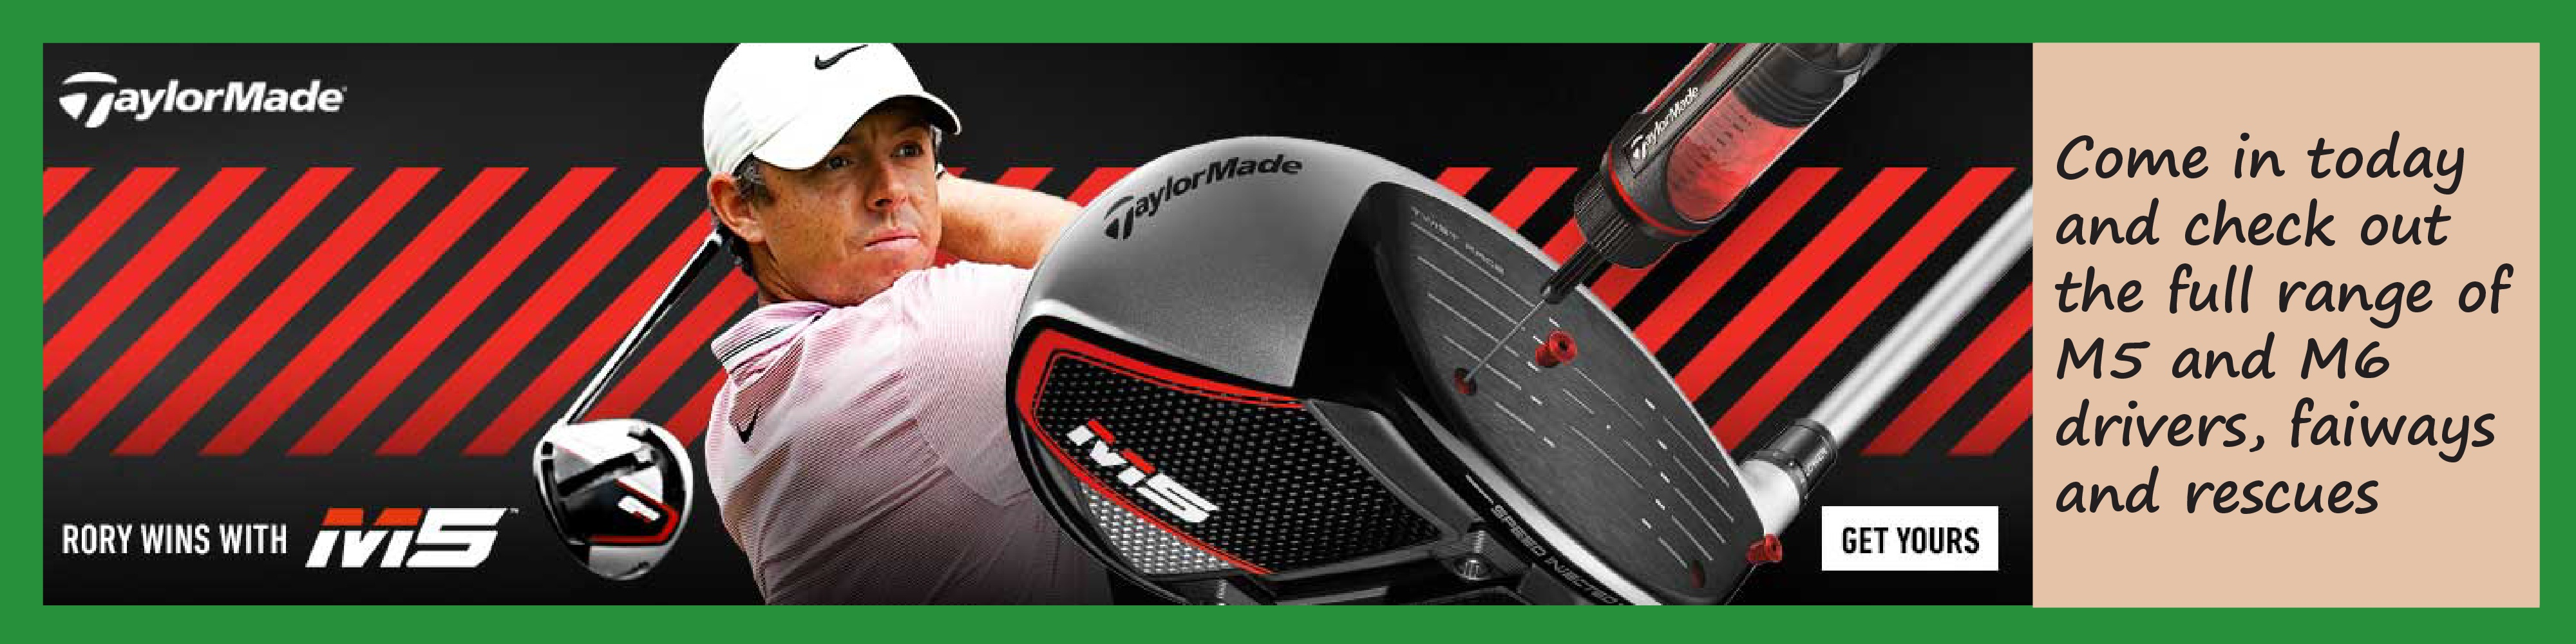 TaylorMade M5 Banner